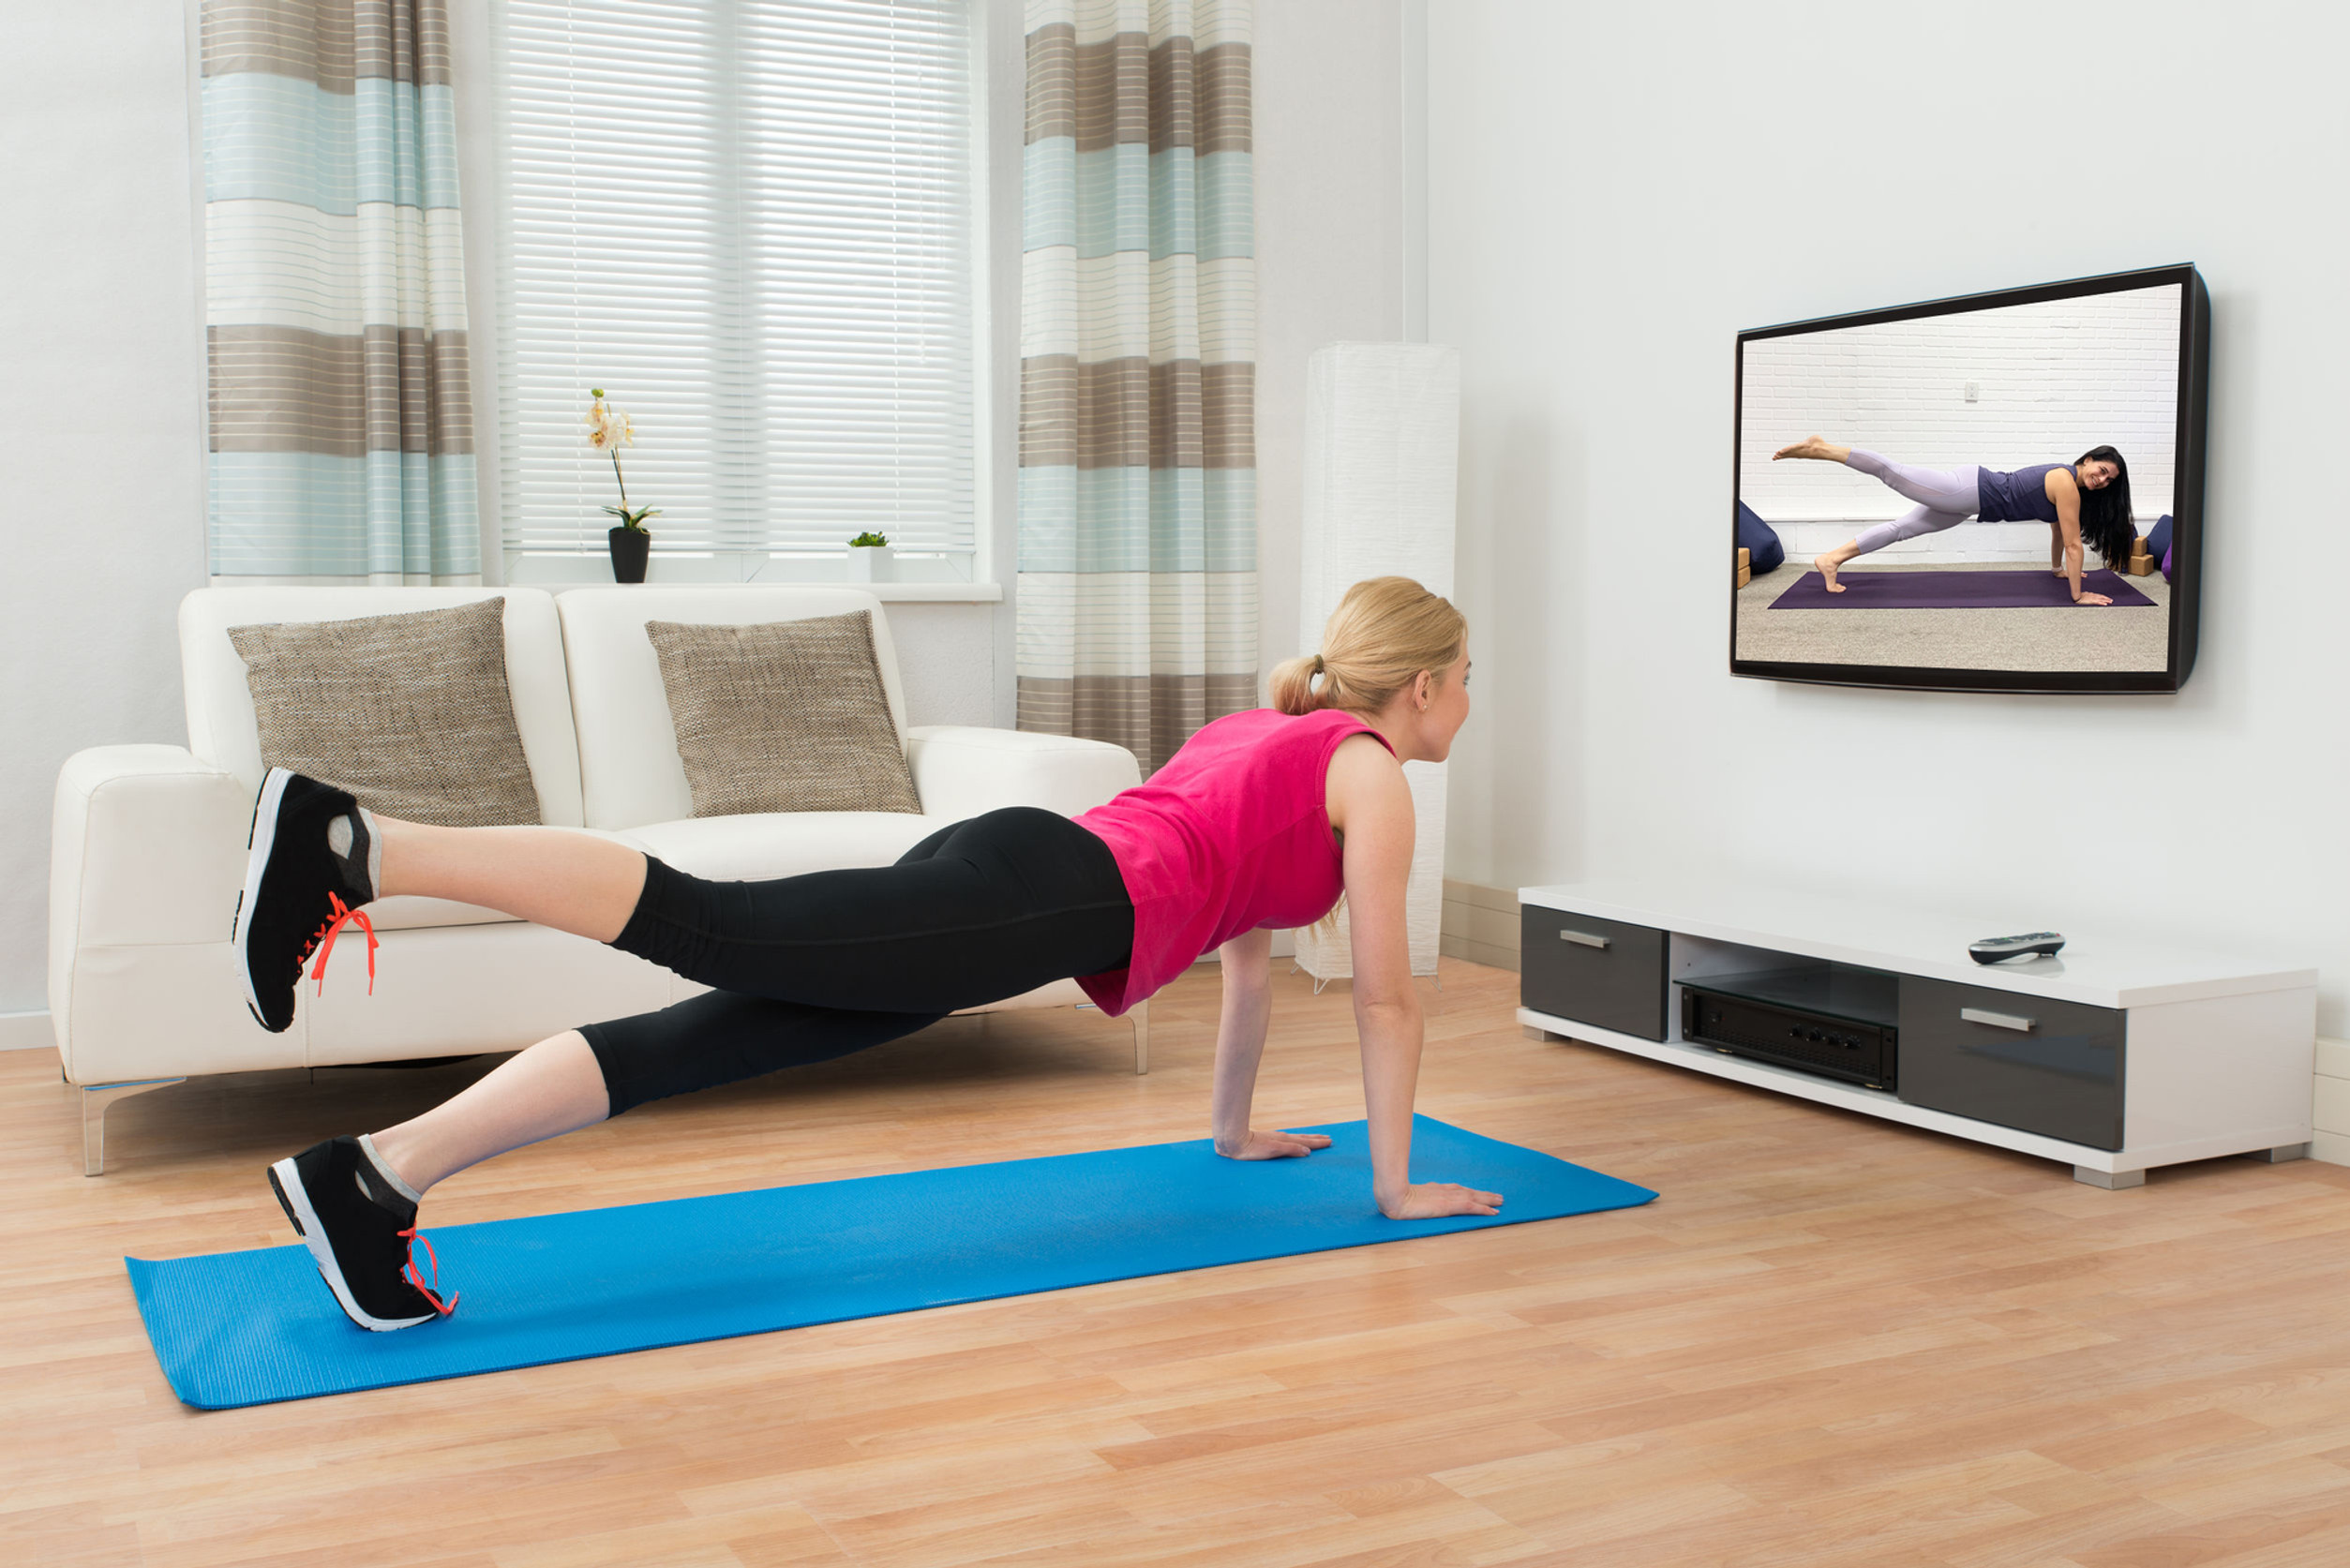 60 Min Live Online Personal Yoga Session